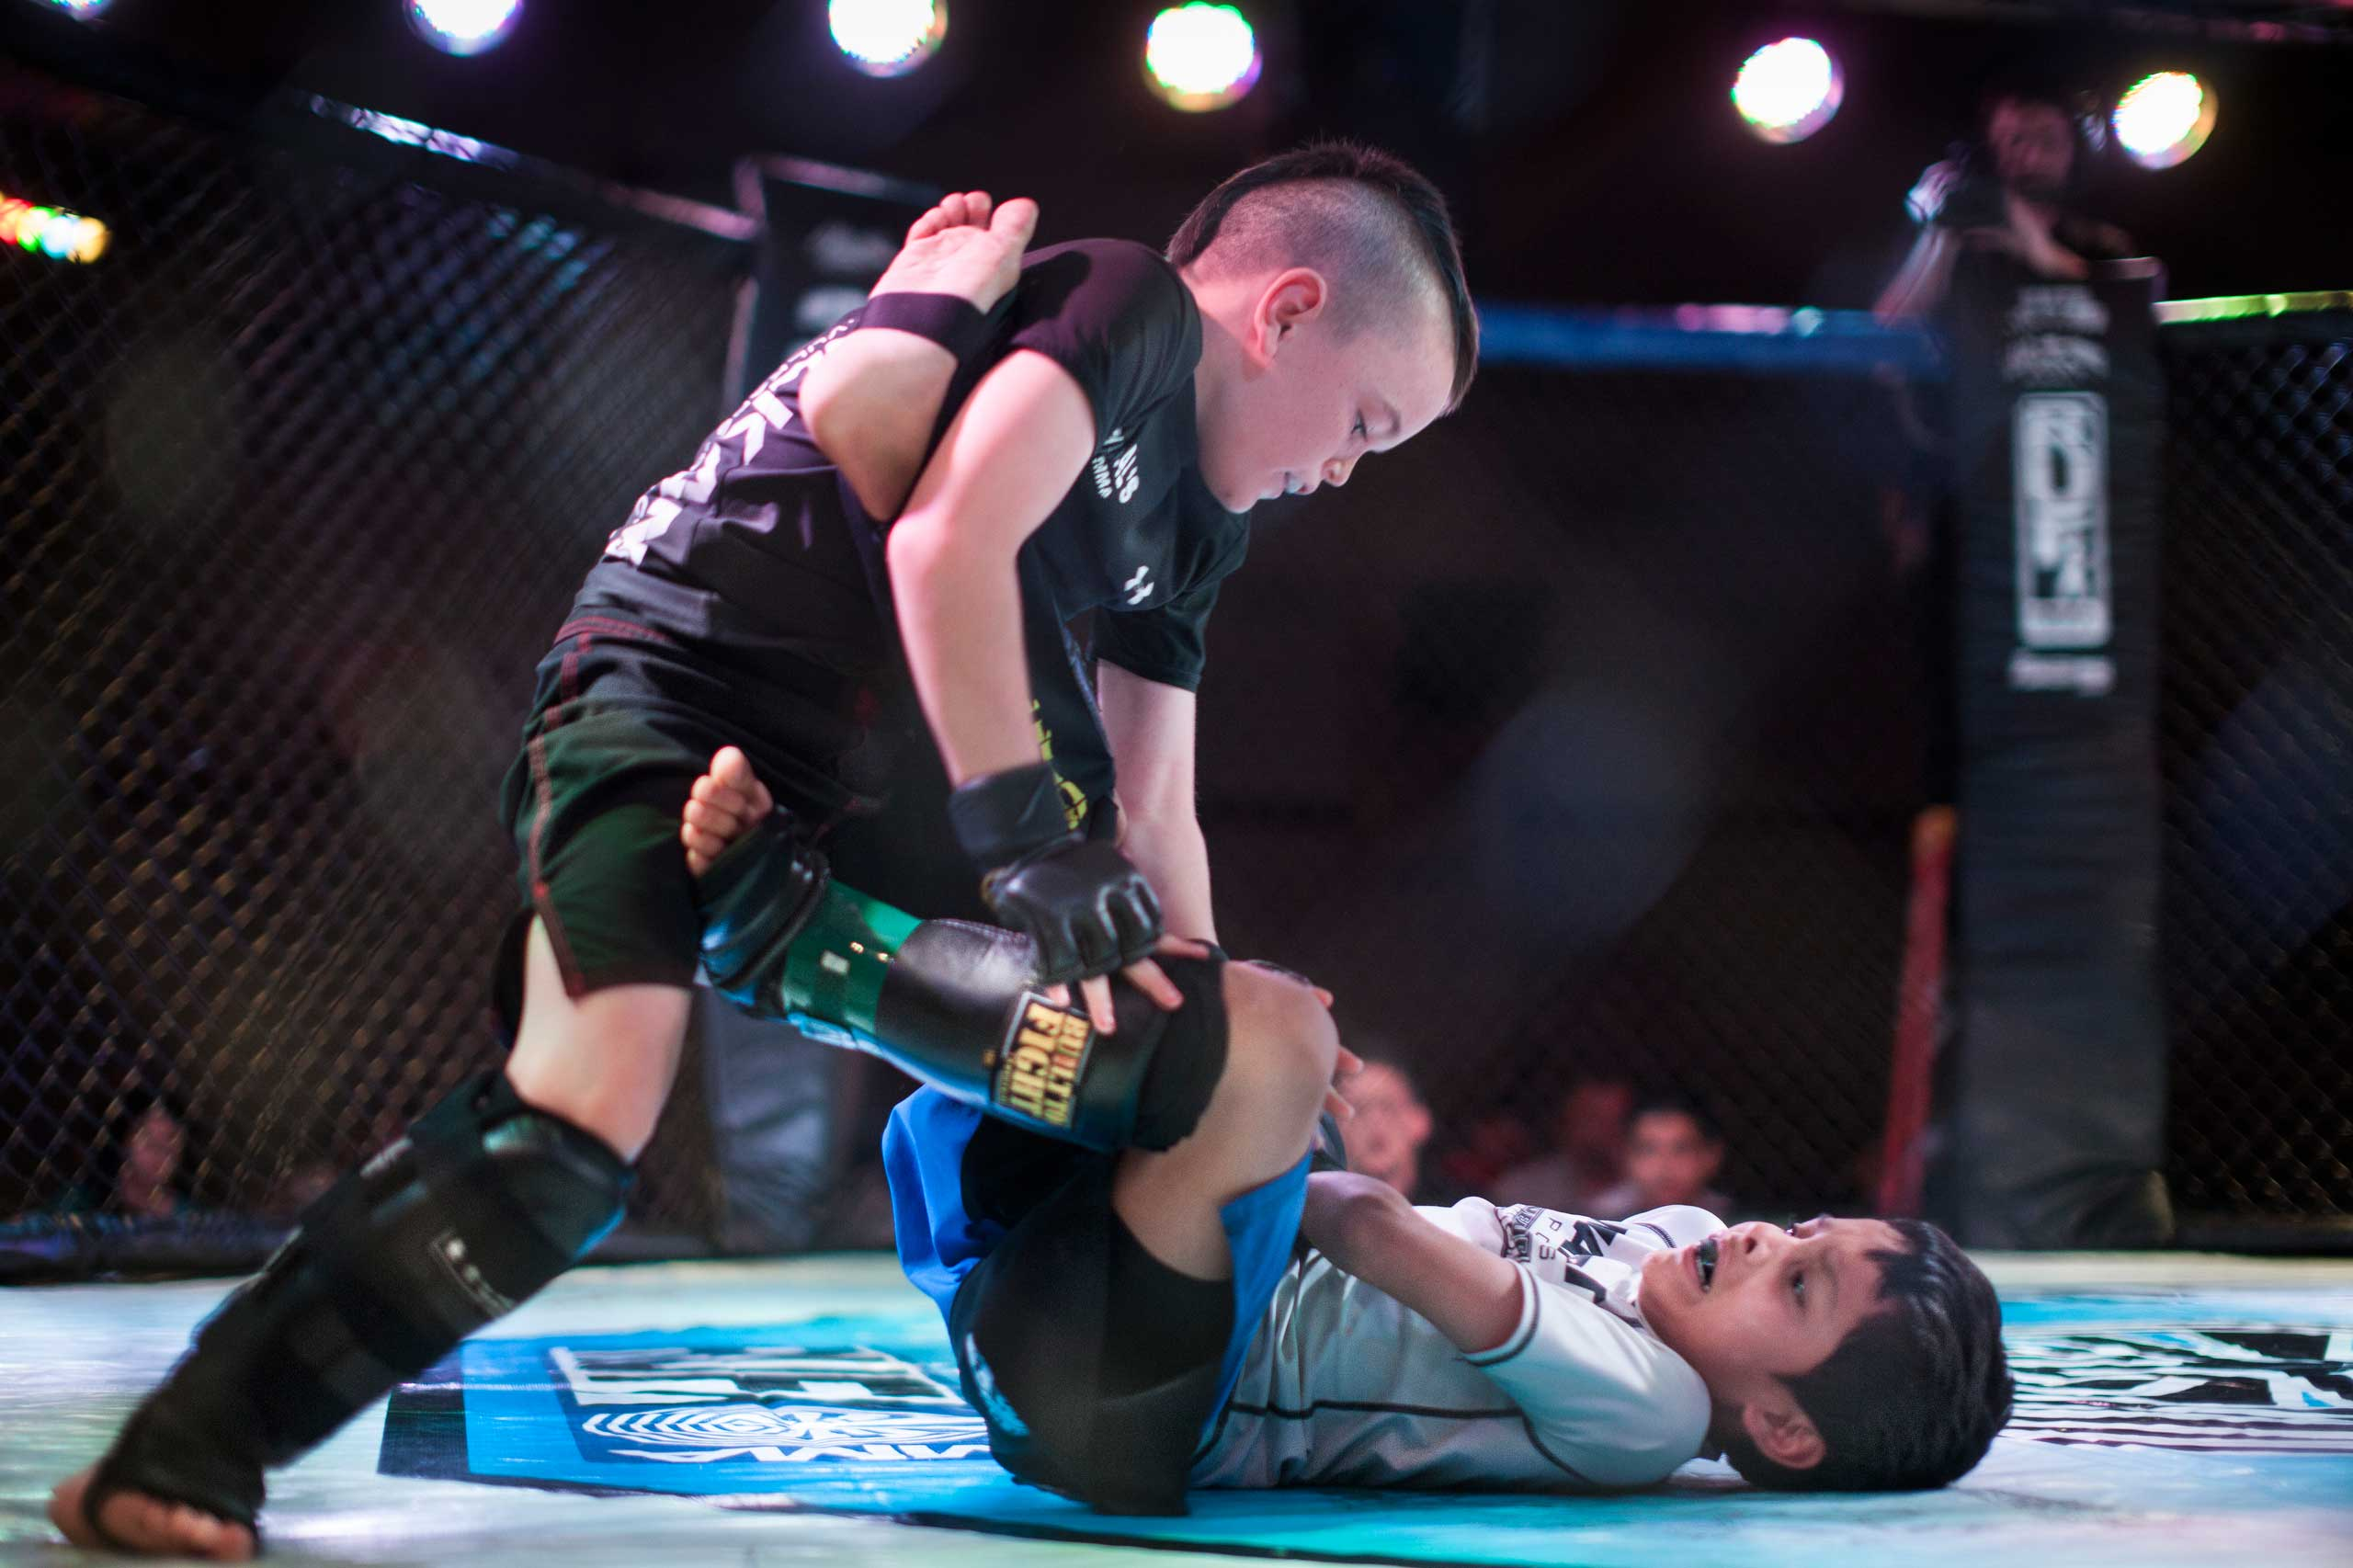 Mixed martial arts fighters Justin Ramirez, 7, and Chris Arrey, 7, fighting in the octagon in United States Fight League All-star Pankration show at Blue Water Casino in Parker, Arizona, Oct, 2013.